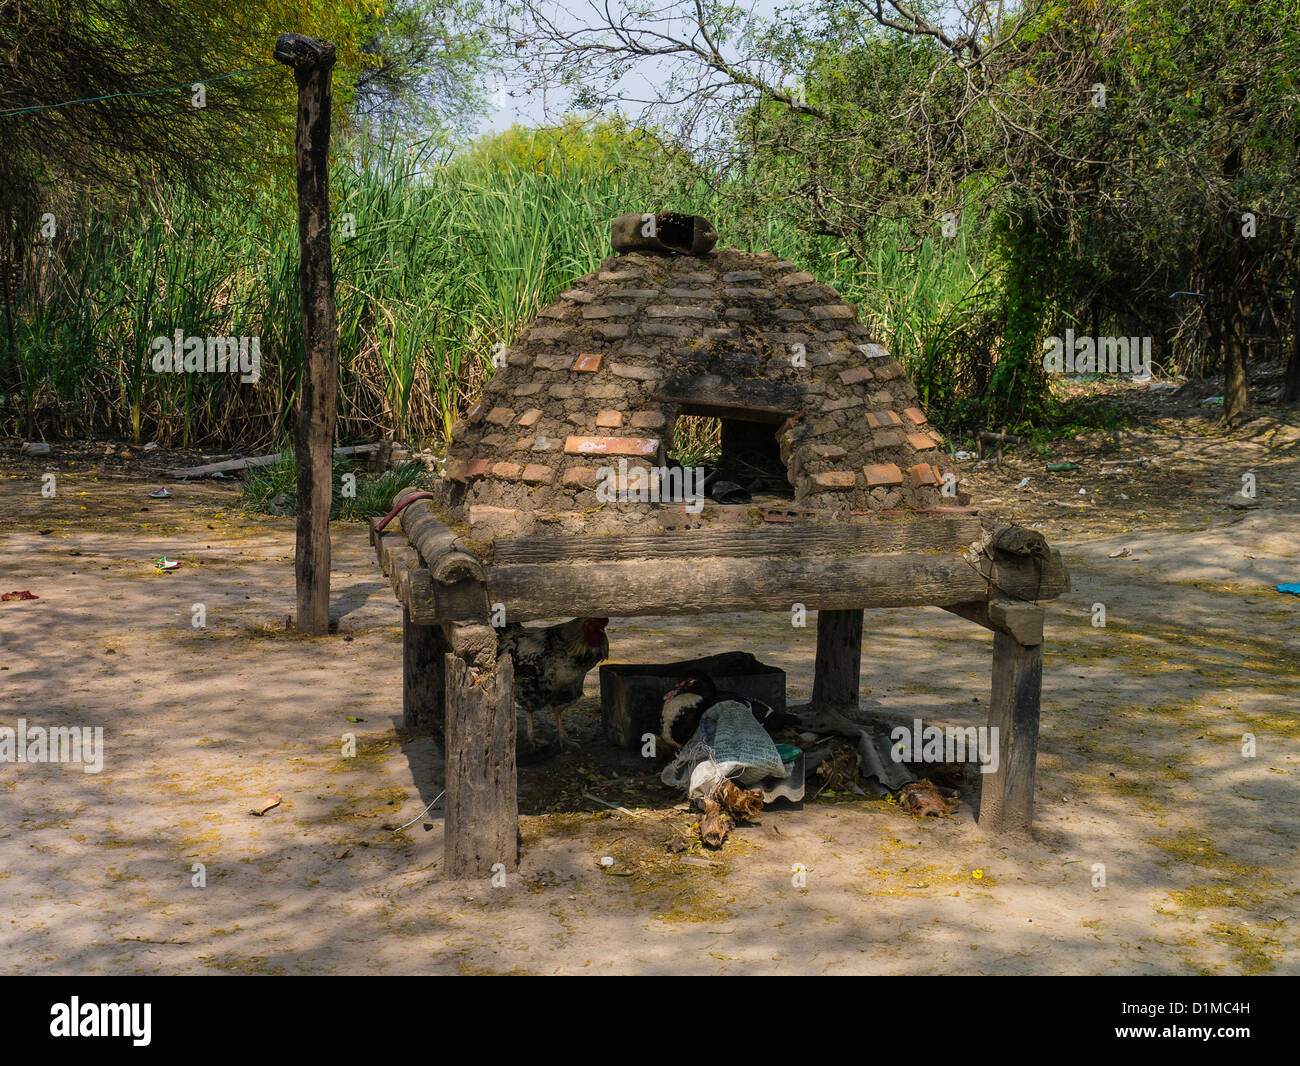 Outdoor brick and mortar oven on stilts at a home in the Chaco region of Paraguay. - Stock Image